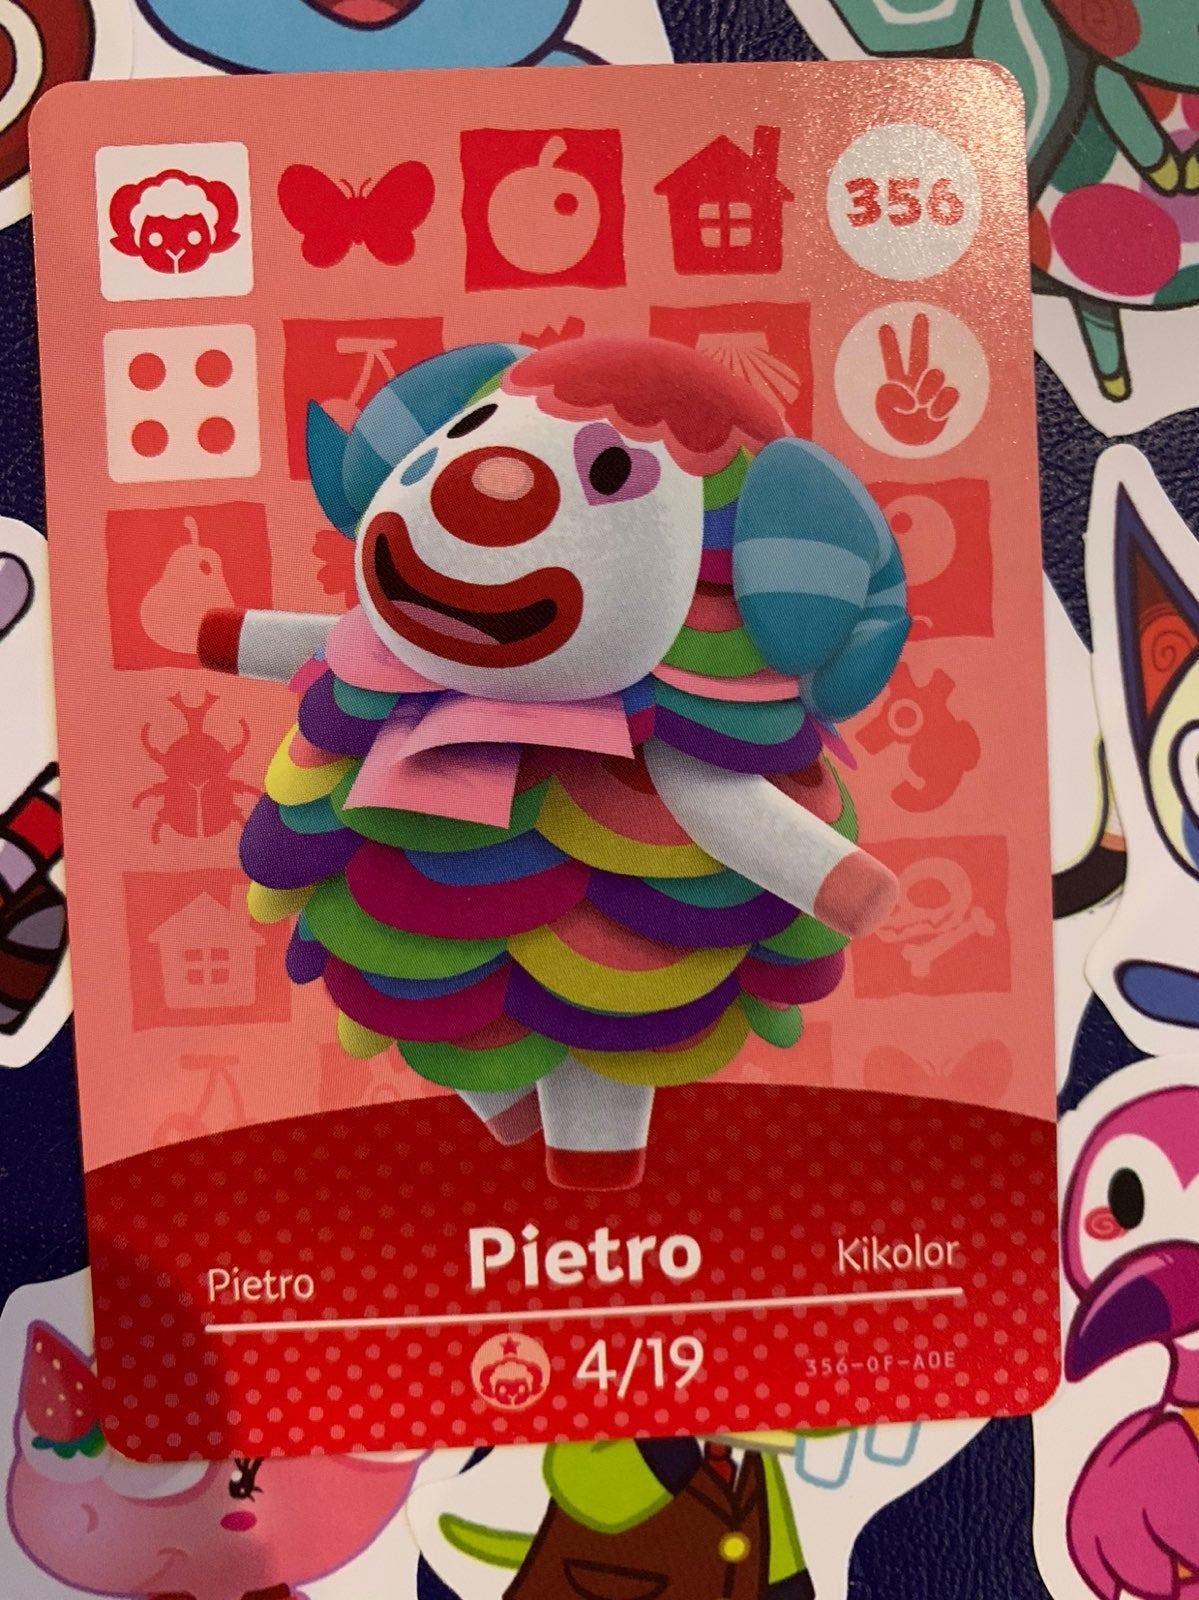 Pietro Animal Crossing Amiibo Card